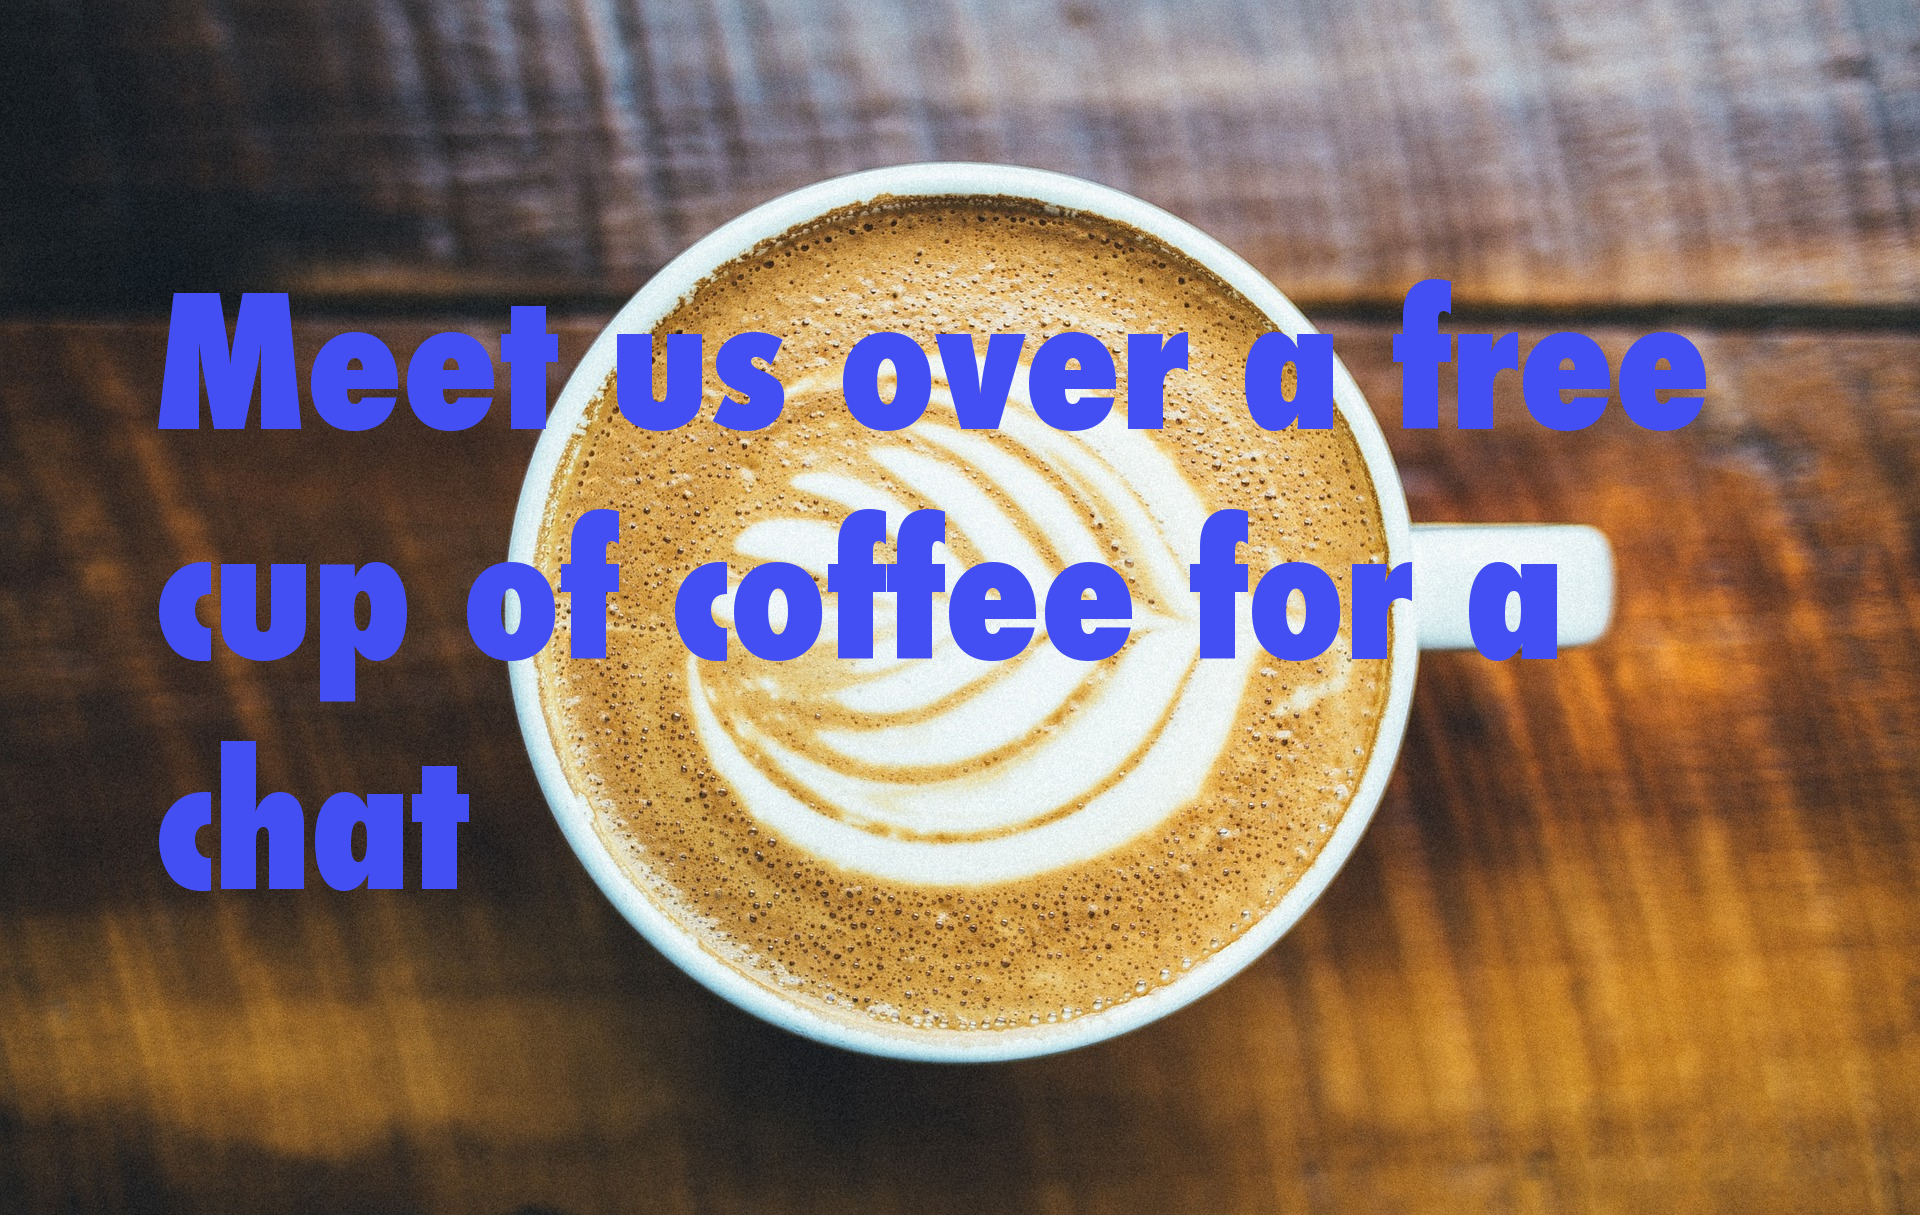 Meet us over a free cup of coffee for a chat